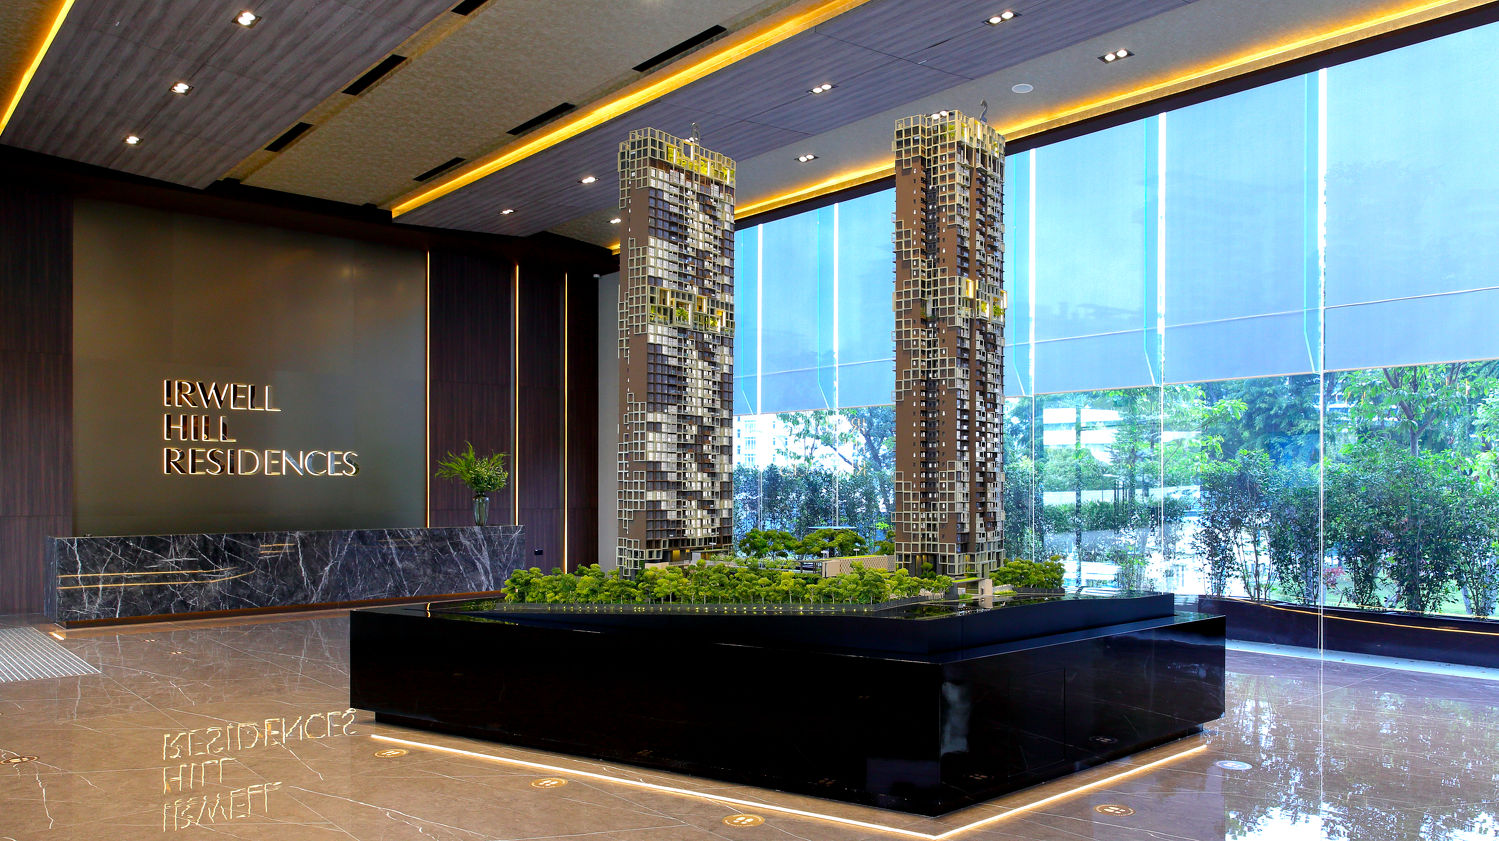 Scale model of Irwell Hill residences - EDGEPROP SINGAPORE